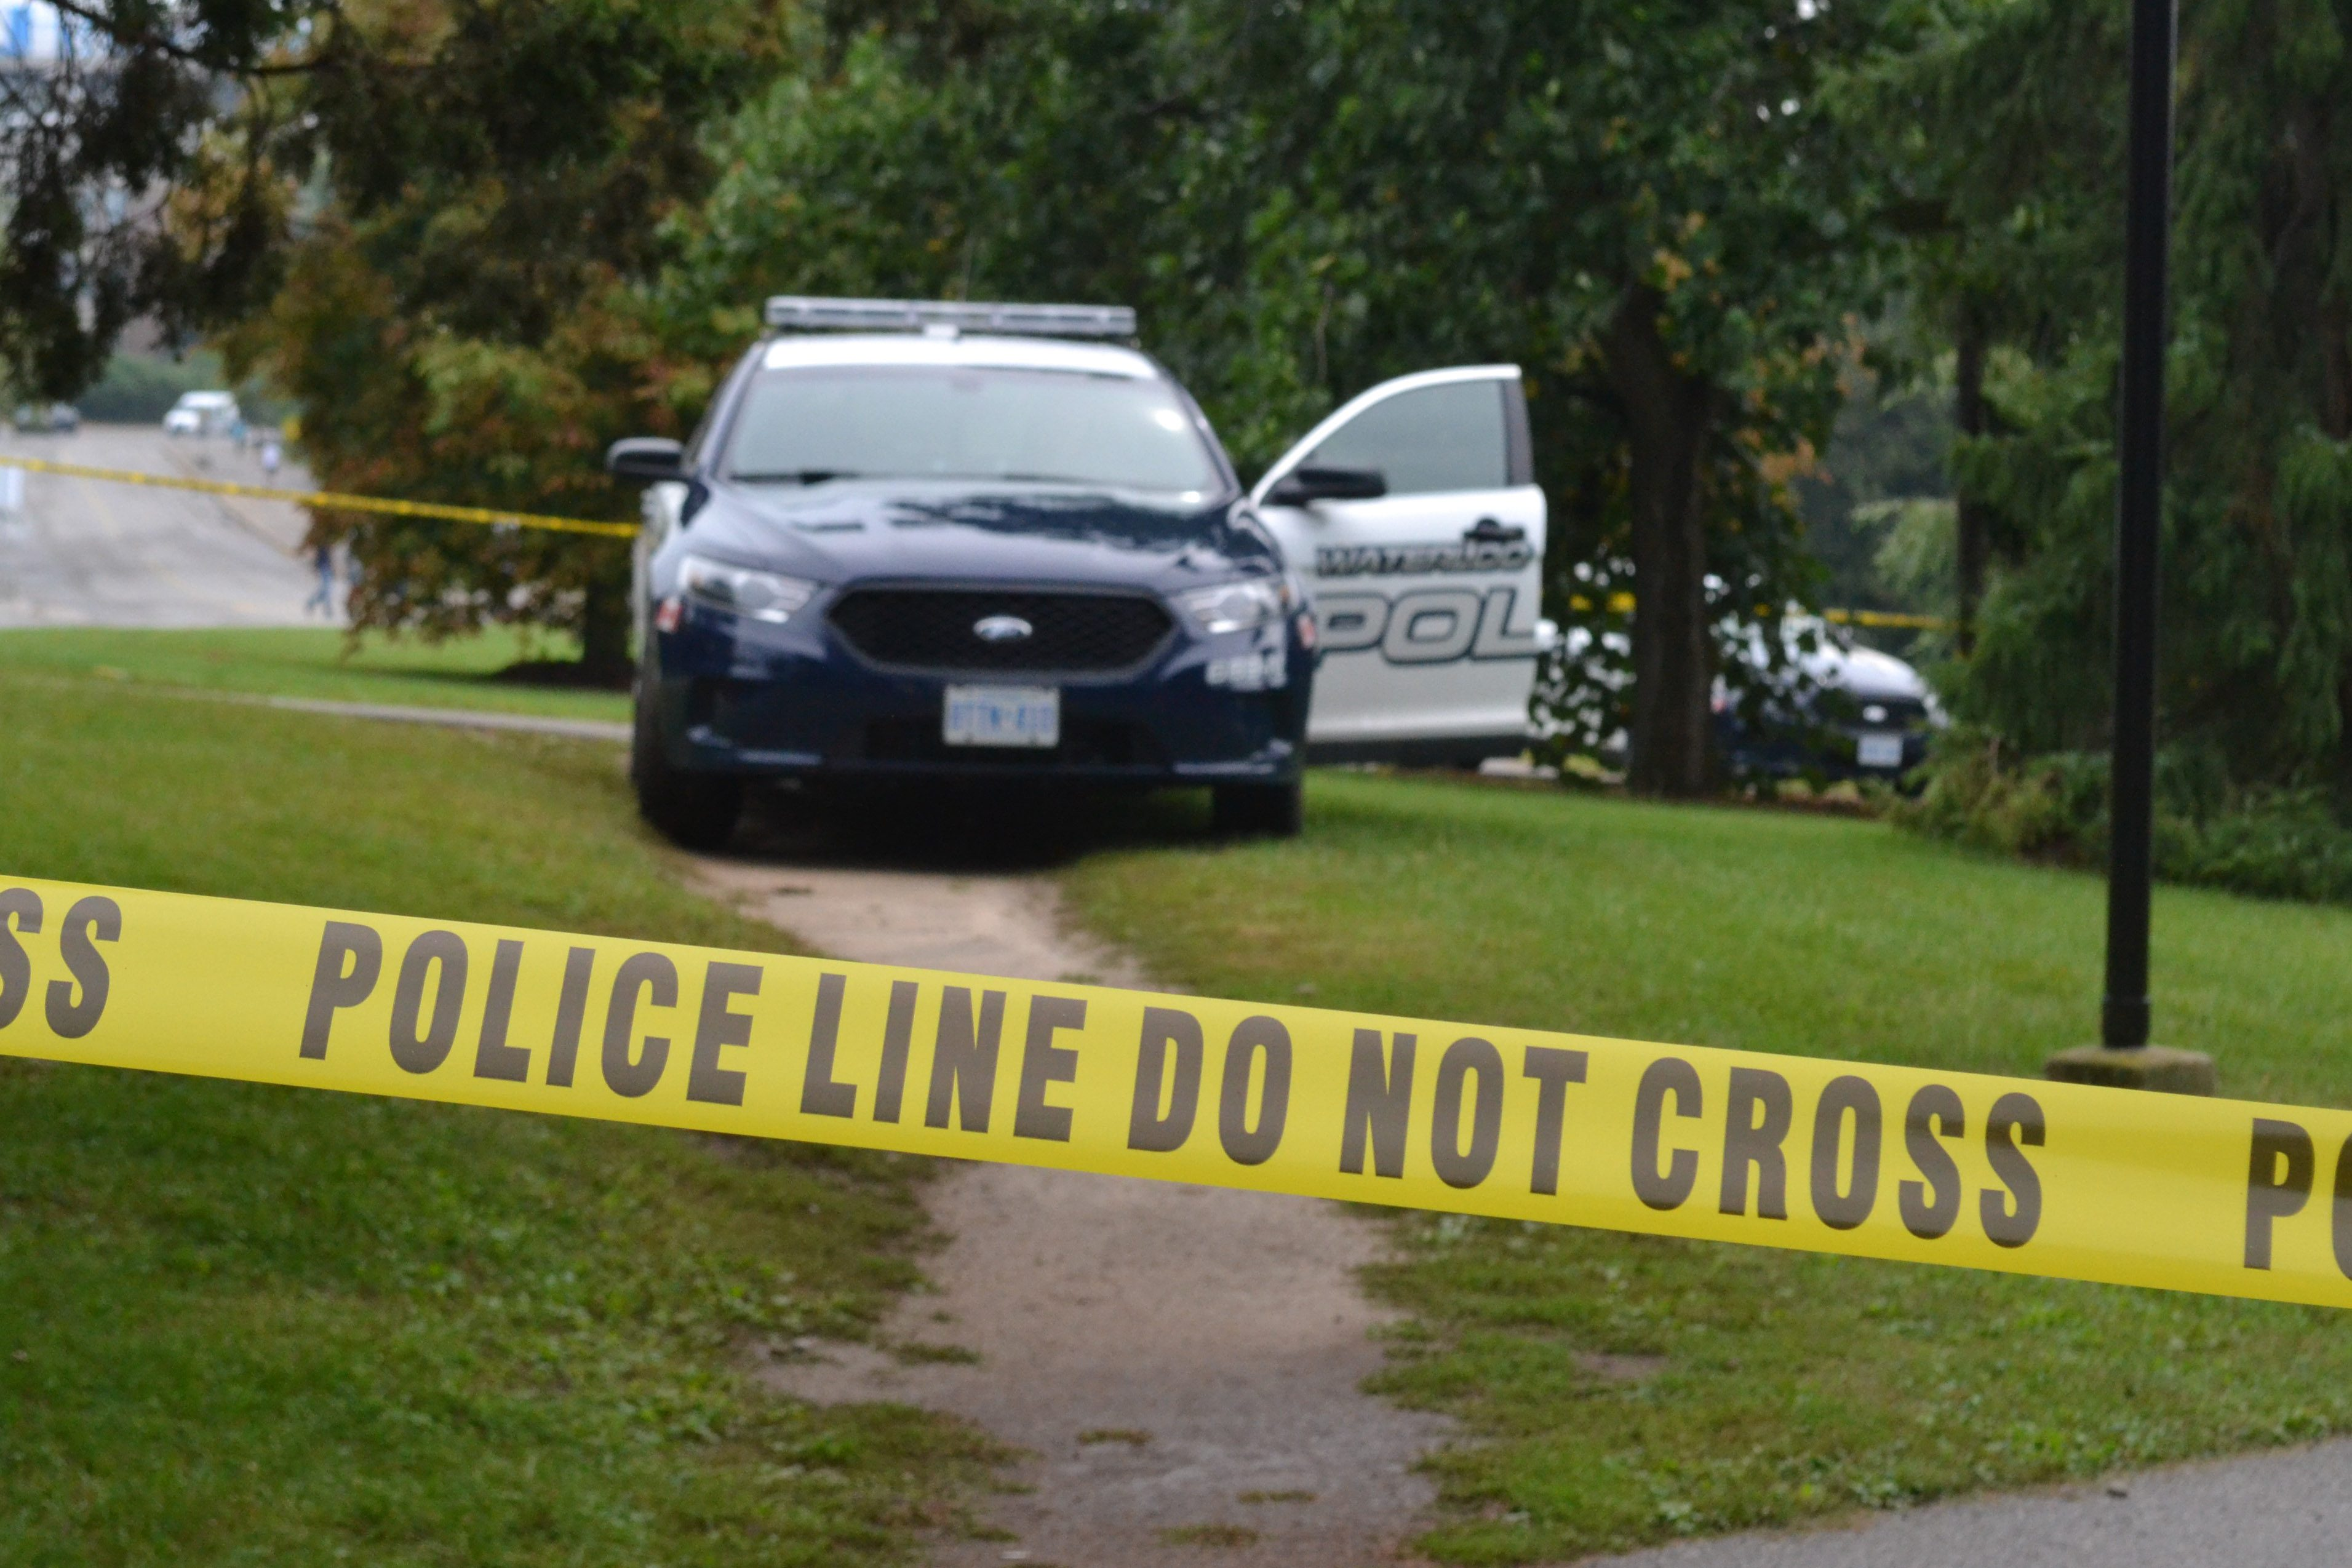 Four people killed in London, Ont. collision in targeted, Islamophobic attack